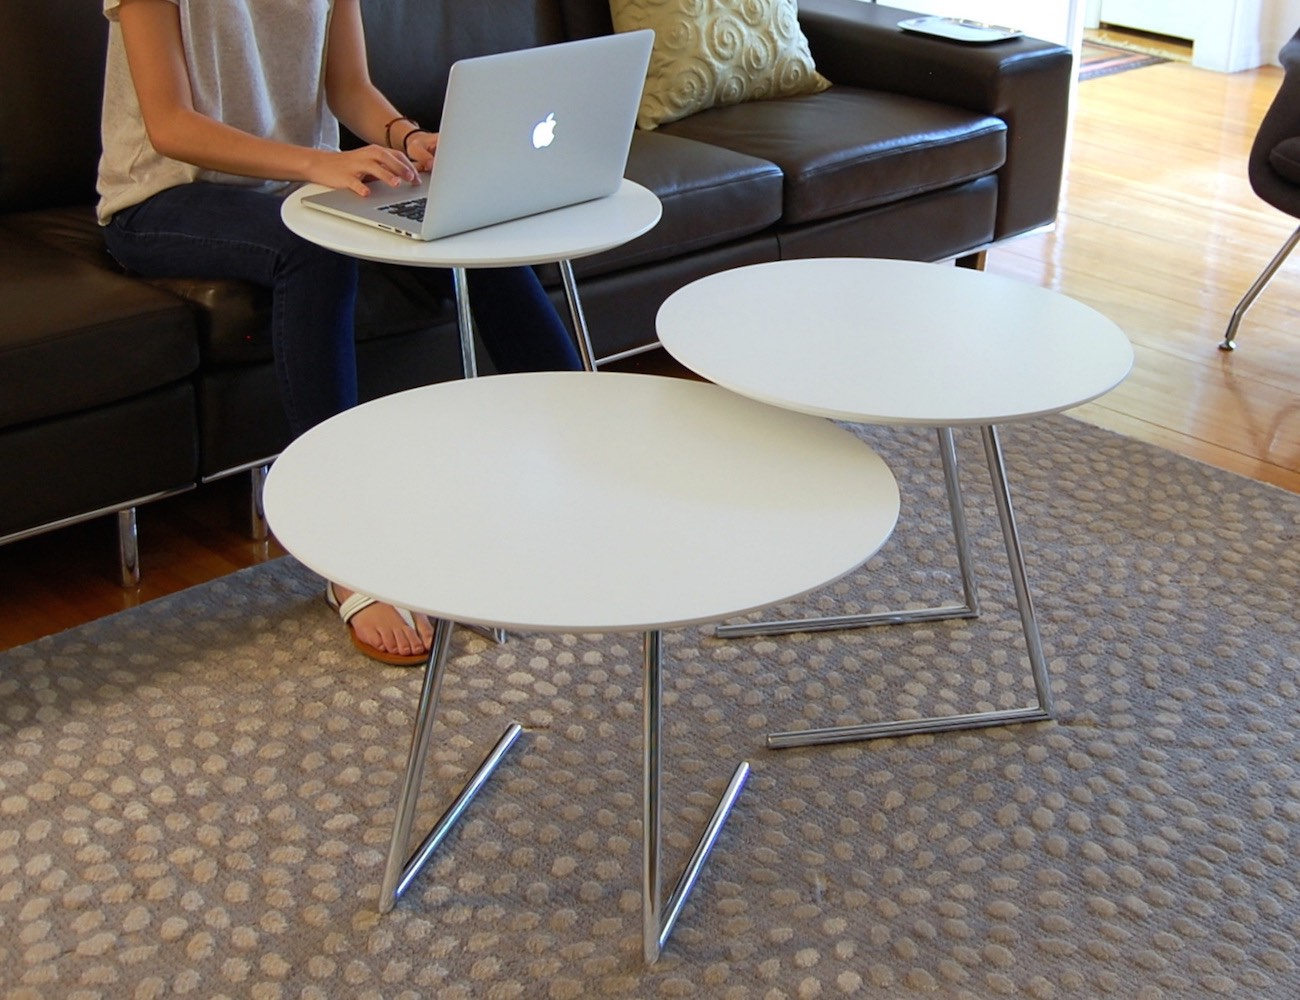 cricket table set - laptop/coffee tables » gadget flow